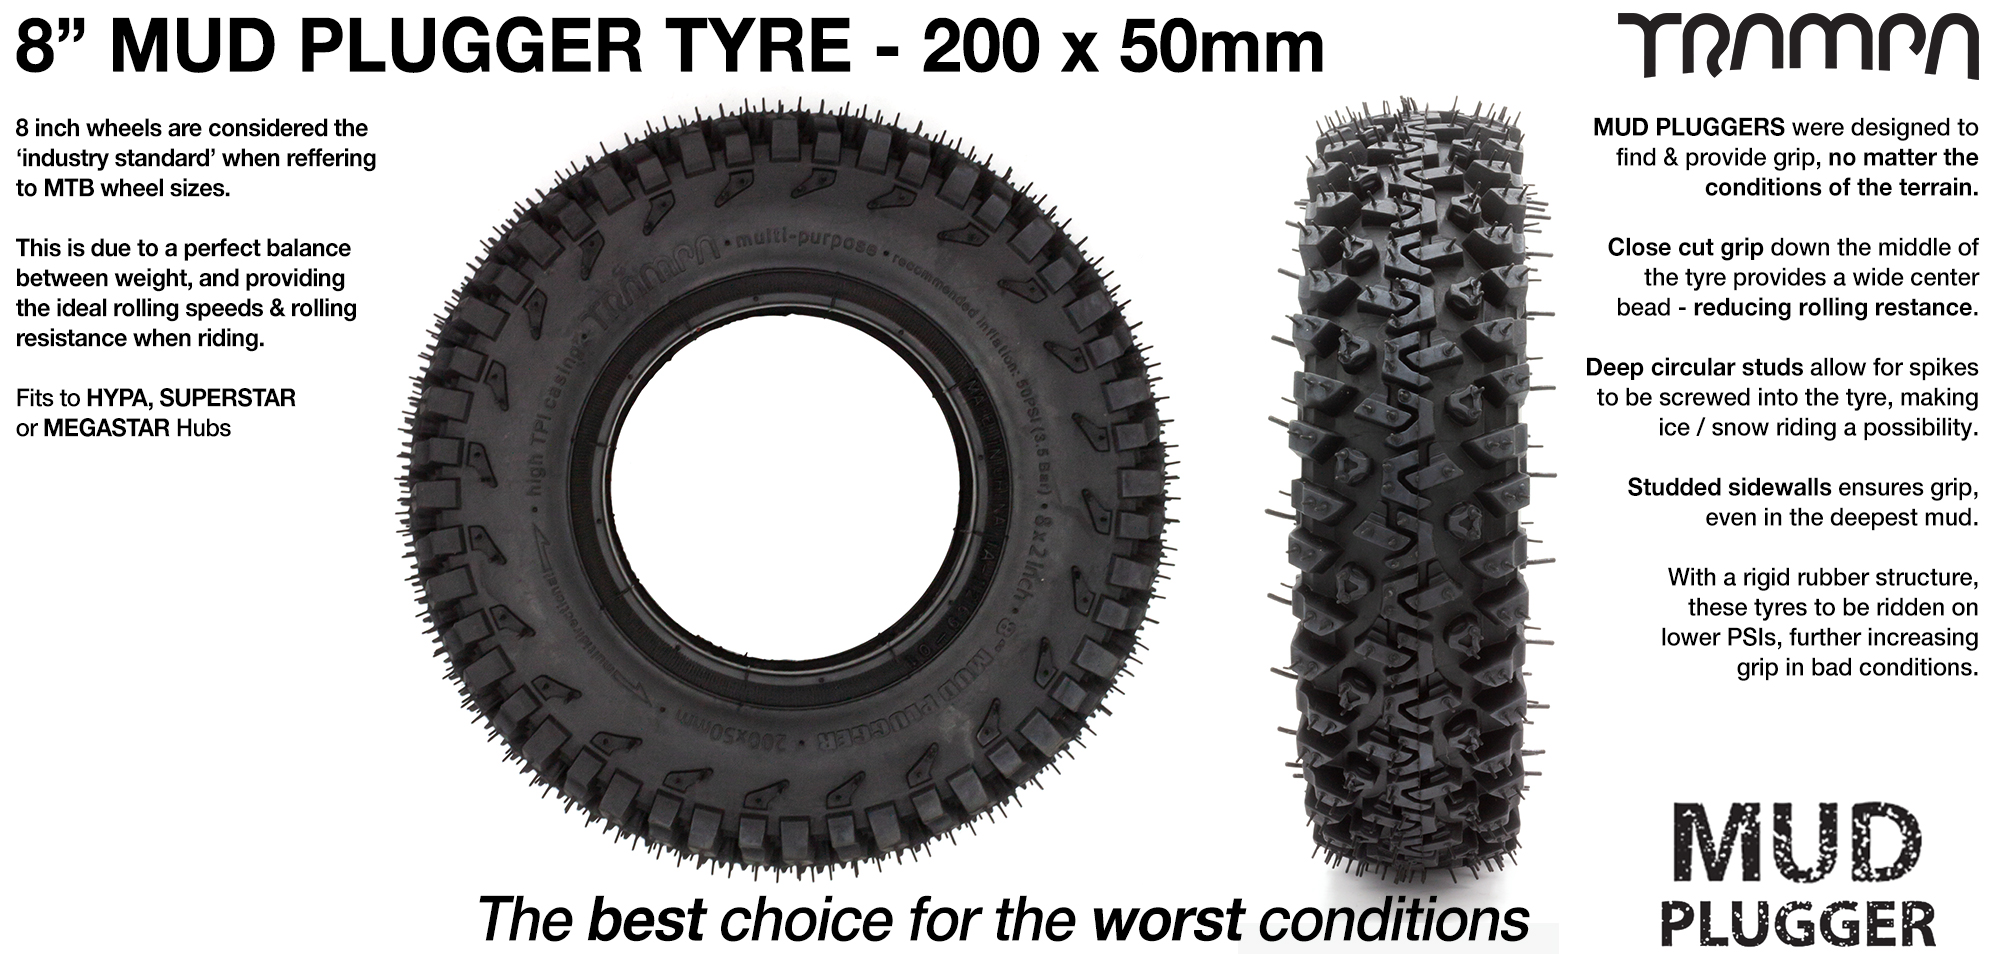 INNOVA MUDPLUGGER - 8 Inch Soft packed Dirt Tyre